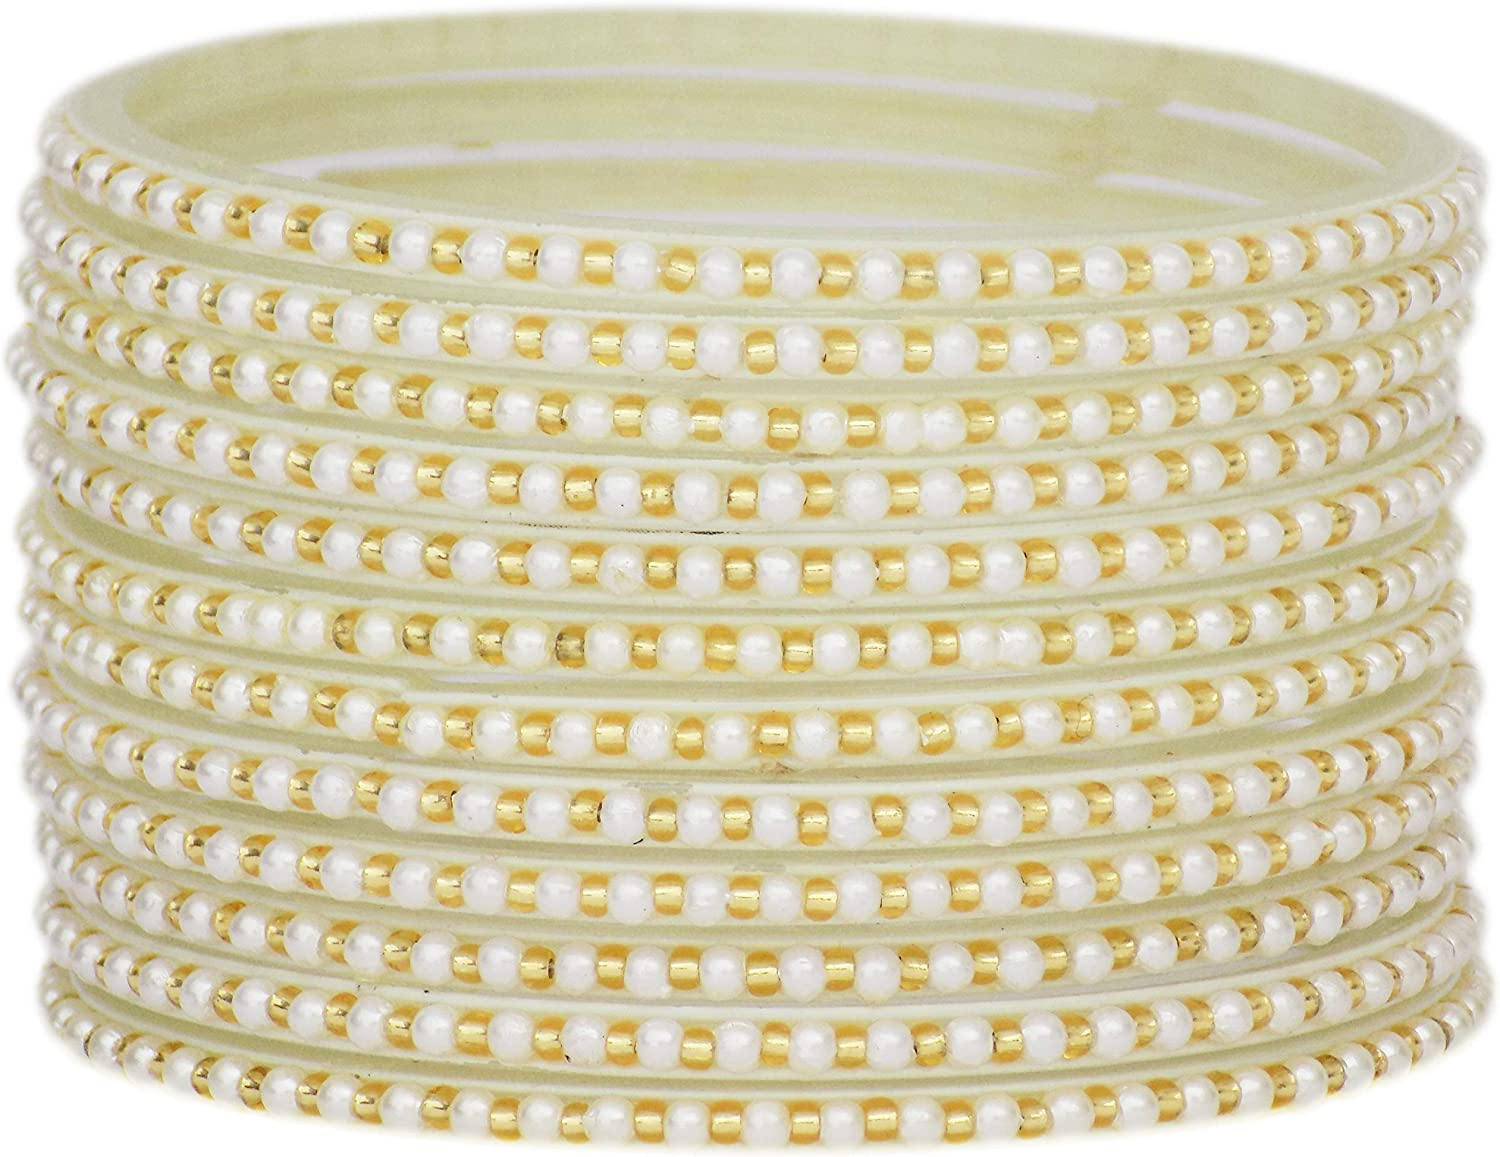 JD'Z COLLECTION Indian Bollywood Traditional Glass Bangles Set Churi Multi Color Bangle Bracelet for Women Jewelry Bangles White